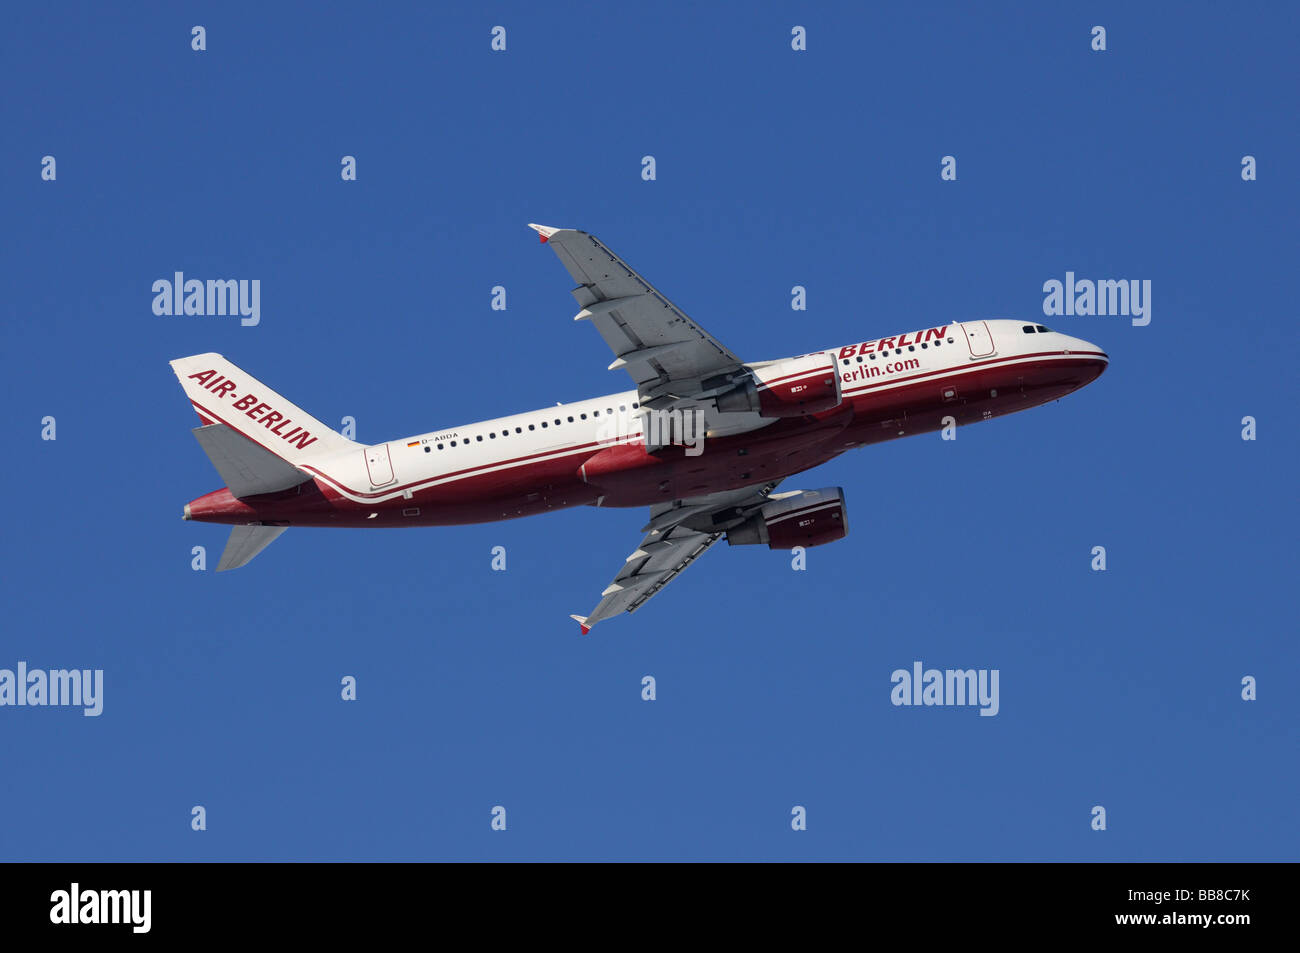 Commercial aircraft, Air Berlin Airbus, A320-200, climbing against a blue sky - Stock Image